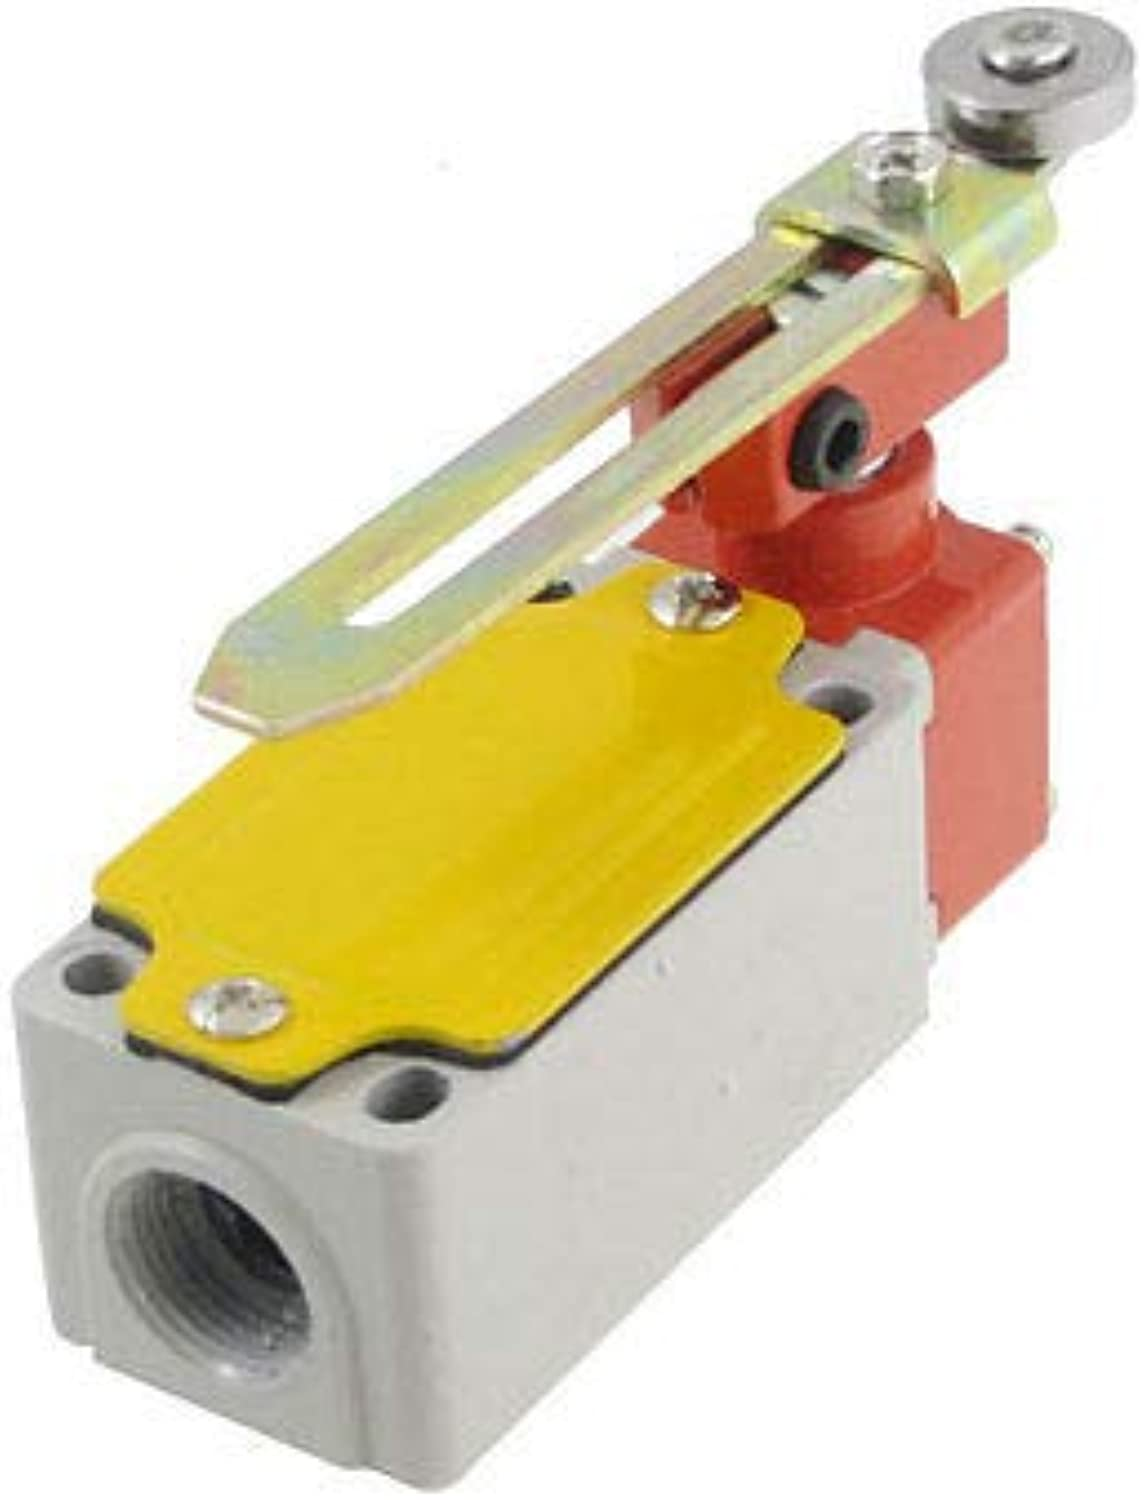 AC 380V 0.8A DC 220V 0.14A redary Adjustable Roller Lever Limit Switch LXK320S T